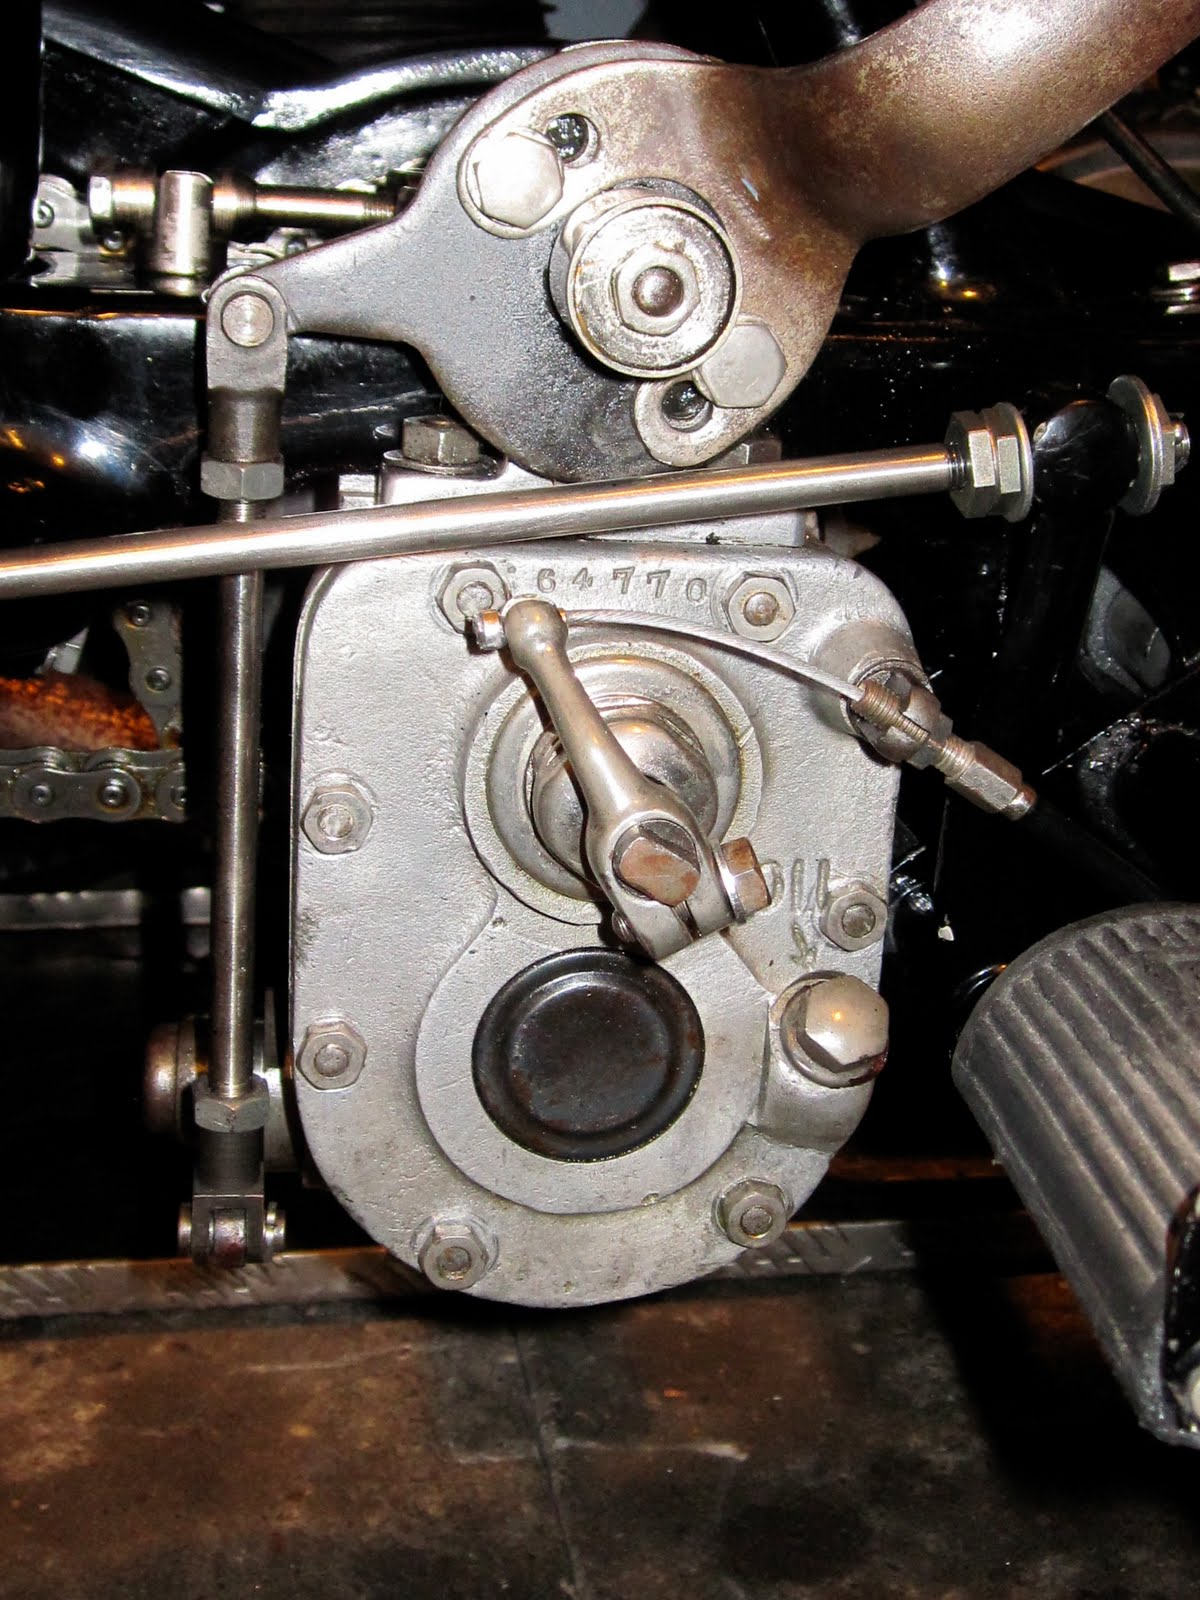 hight resolution of vintage norton motorcycles sturmey archer gearboxes fitted to vintage nortons